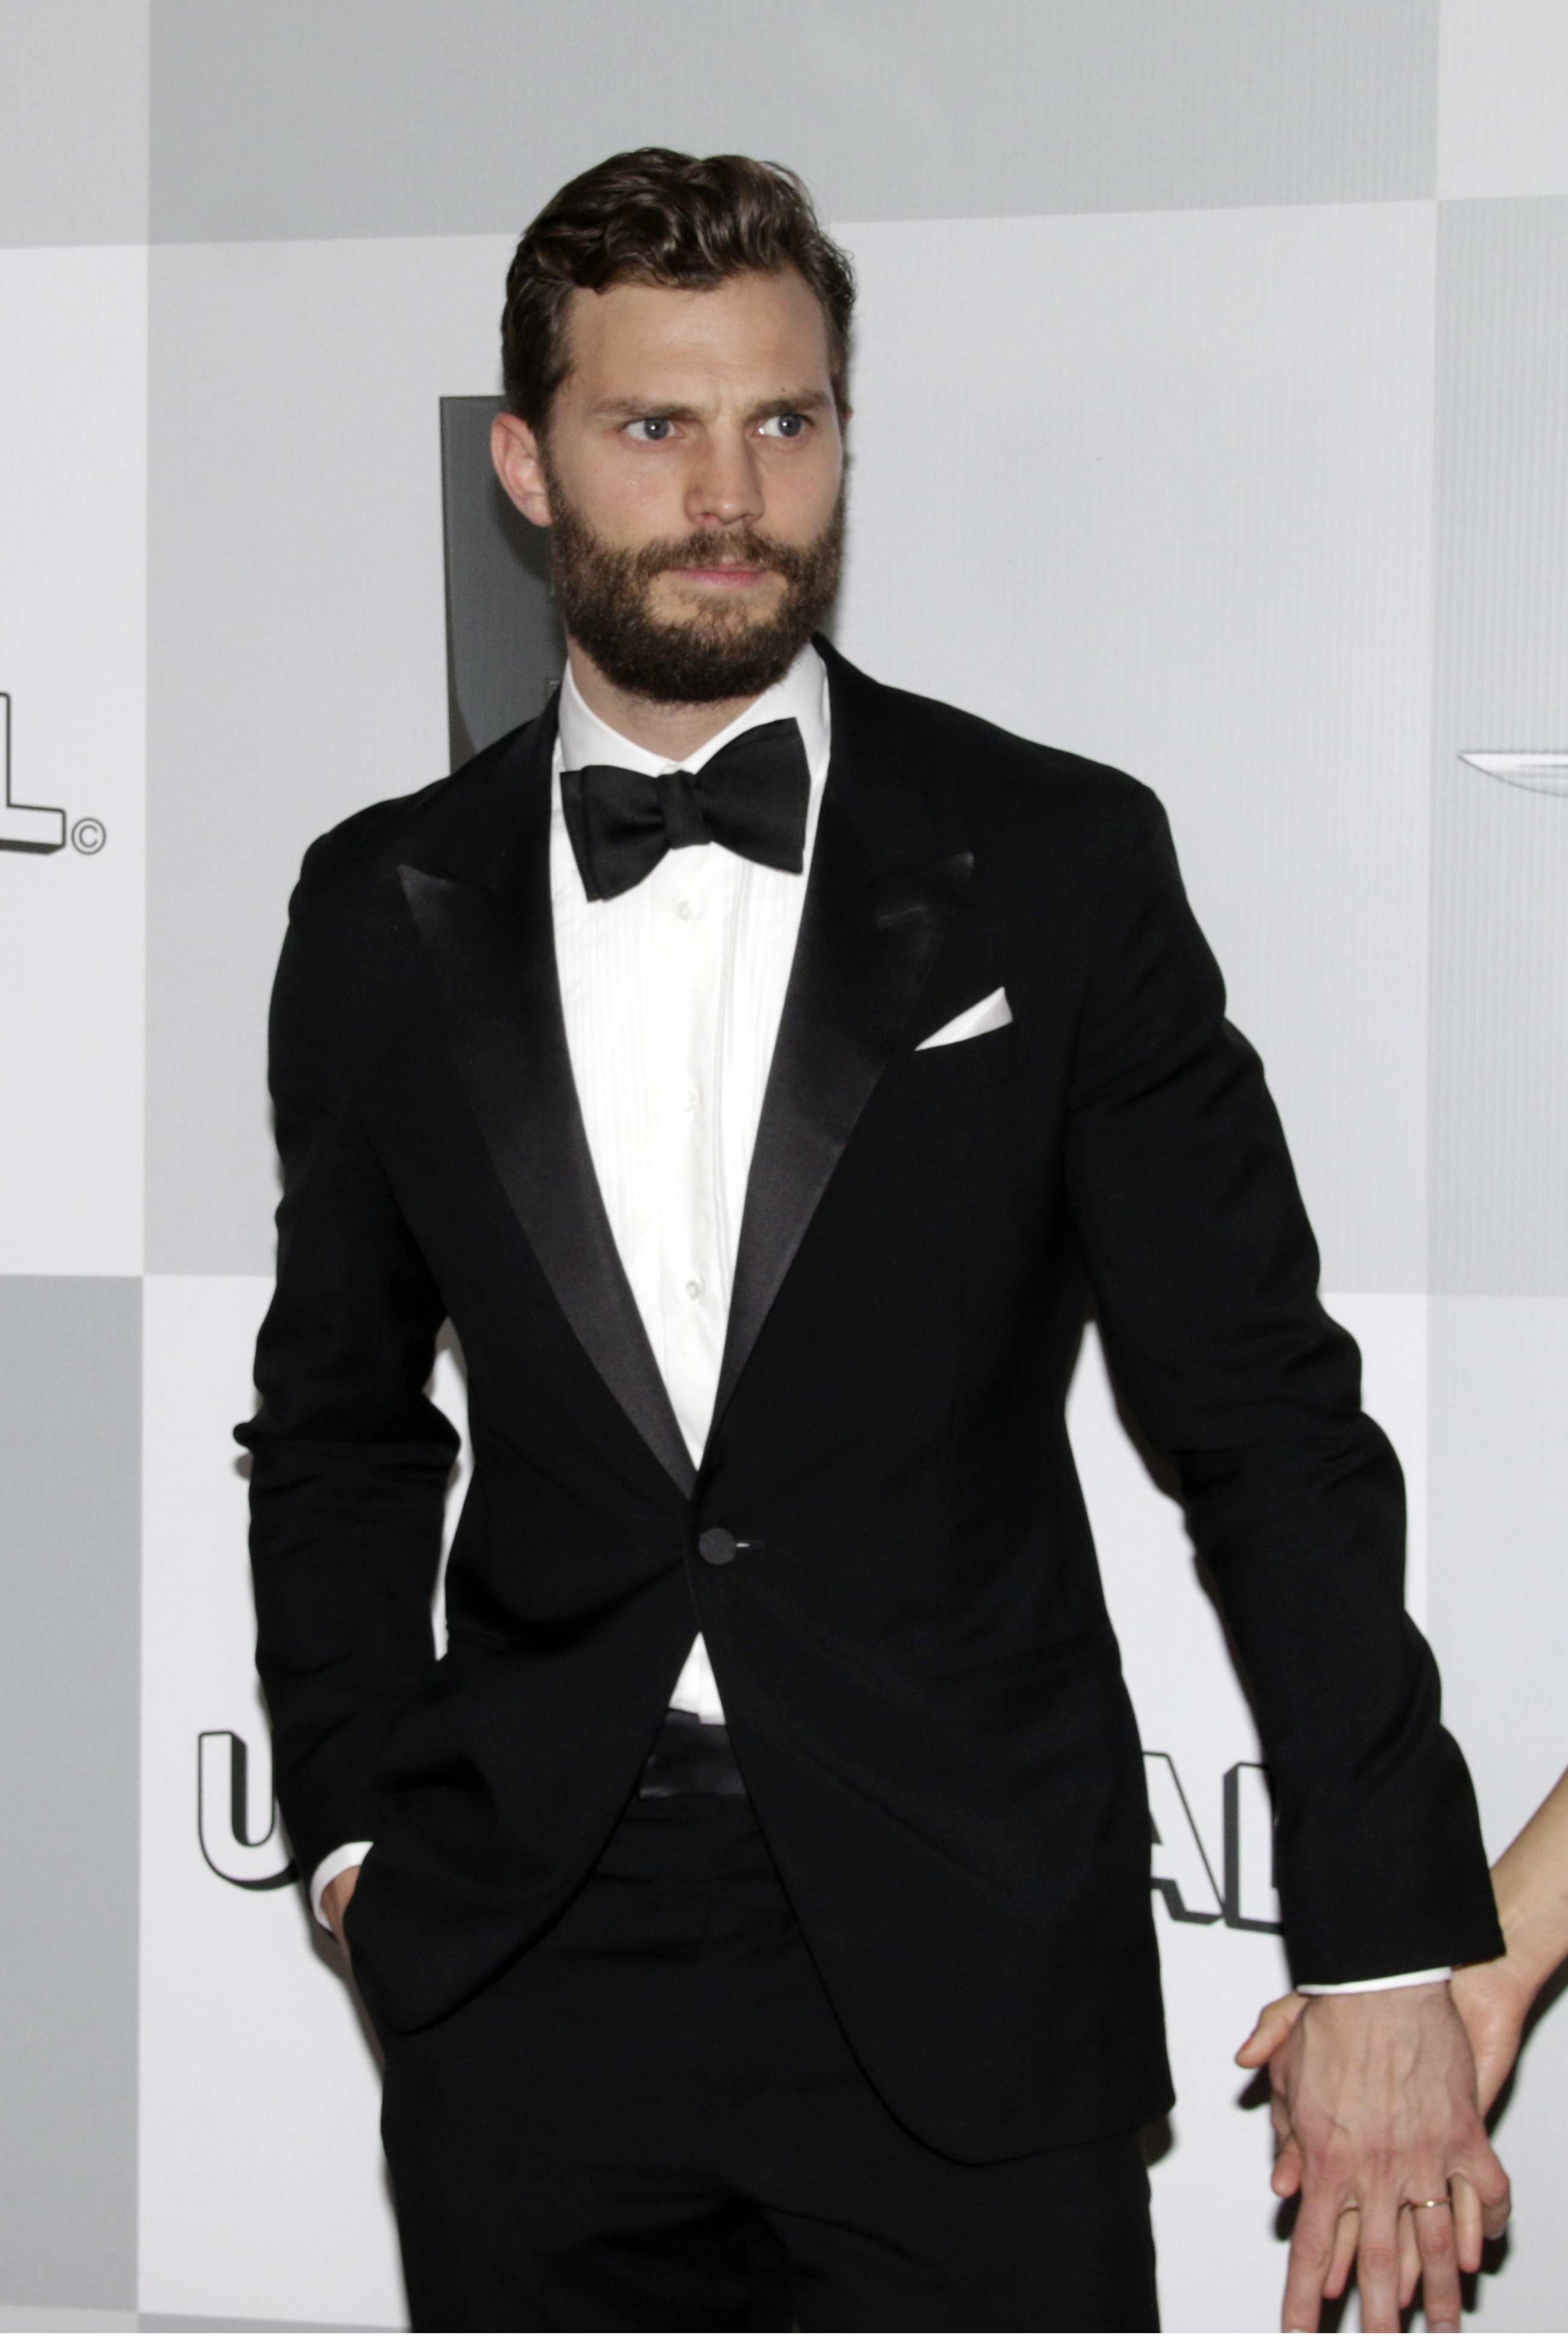 Jamie Dornan turns his back on Christian Grey for good TheFuss.co.uk